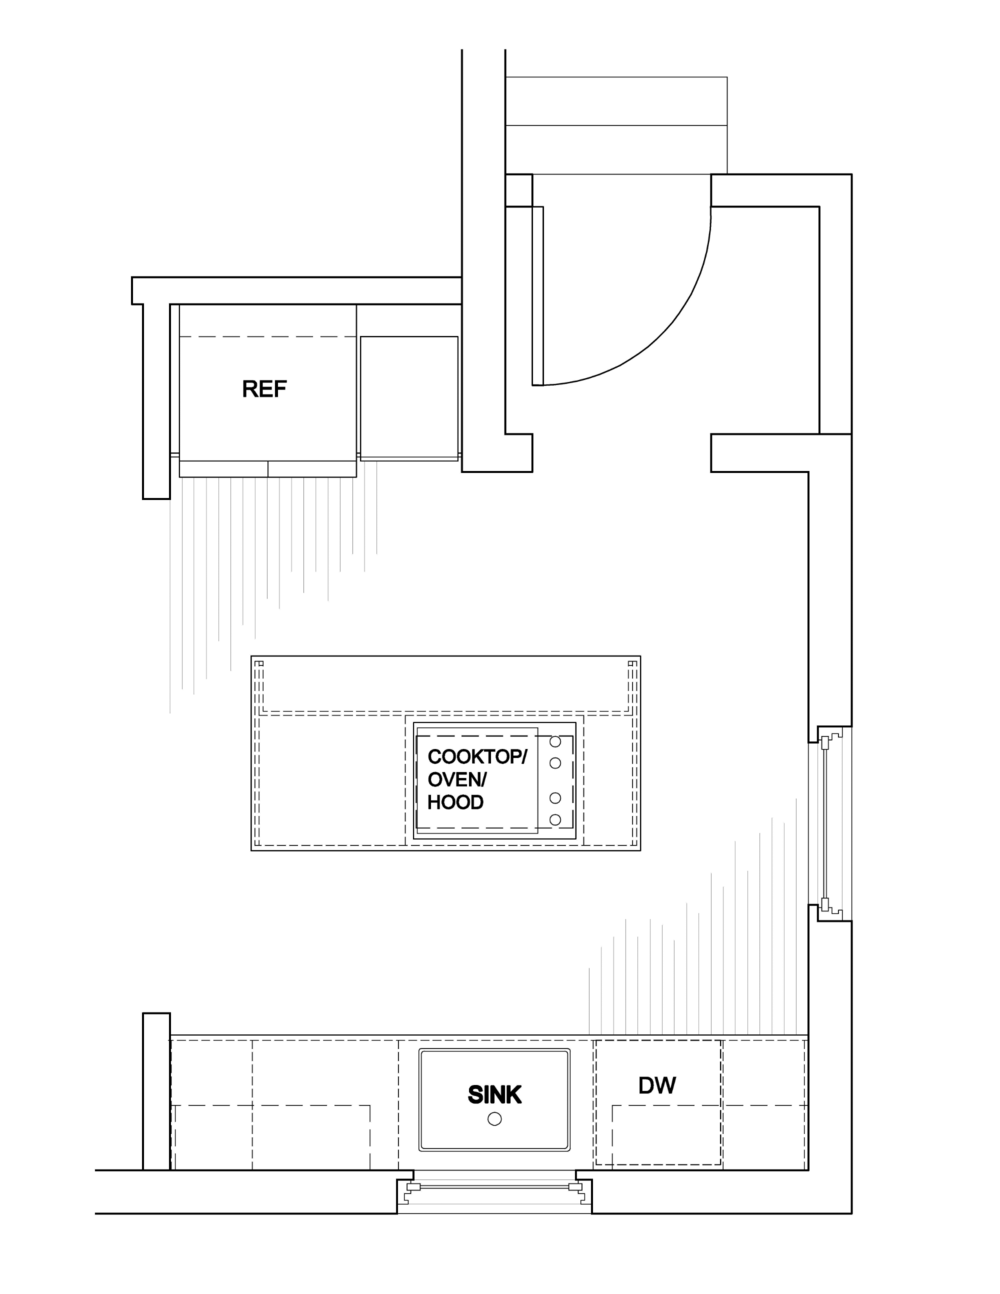 """The biggest impact to the kitchen layout is the enlarged 8 ft wide opening. The kitchen now directly connects to the adjacent dining room. The enlarged opening also mirrors the opposite wall opening that connects the dining room to the living room. A 6 ft wide center island now houses the cooking appliances. I even managed to fit in an island overhang where 3 stools will be placed. It was a tight fit and the absolute minimum aisle clearances, but I was determined to make it work. The sink, dishwasher, refrigerator and remaining cabinet locations remain virtually the same. Oak 2-1/4"""" t&g wood flooring will be installed to match the rest of the flooring in the house. I considered relocating the side window to be centered on the island, but it is already centered on the roof ridge from the exterior and I thought that to be the more important alignment."""